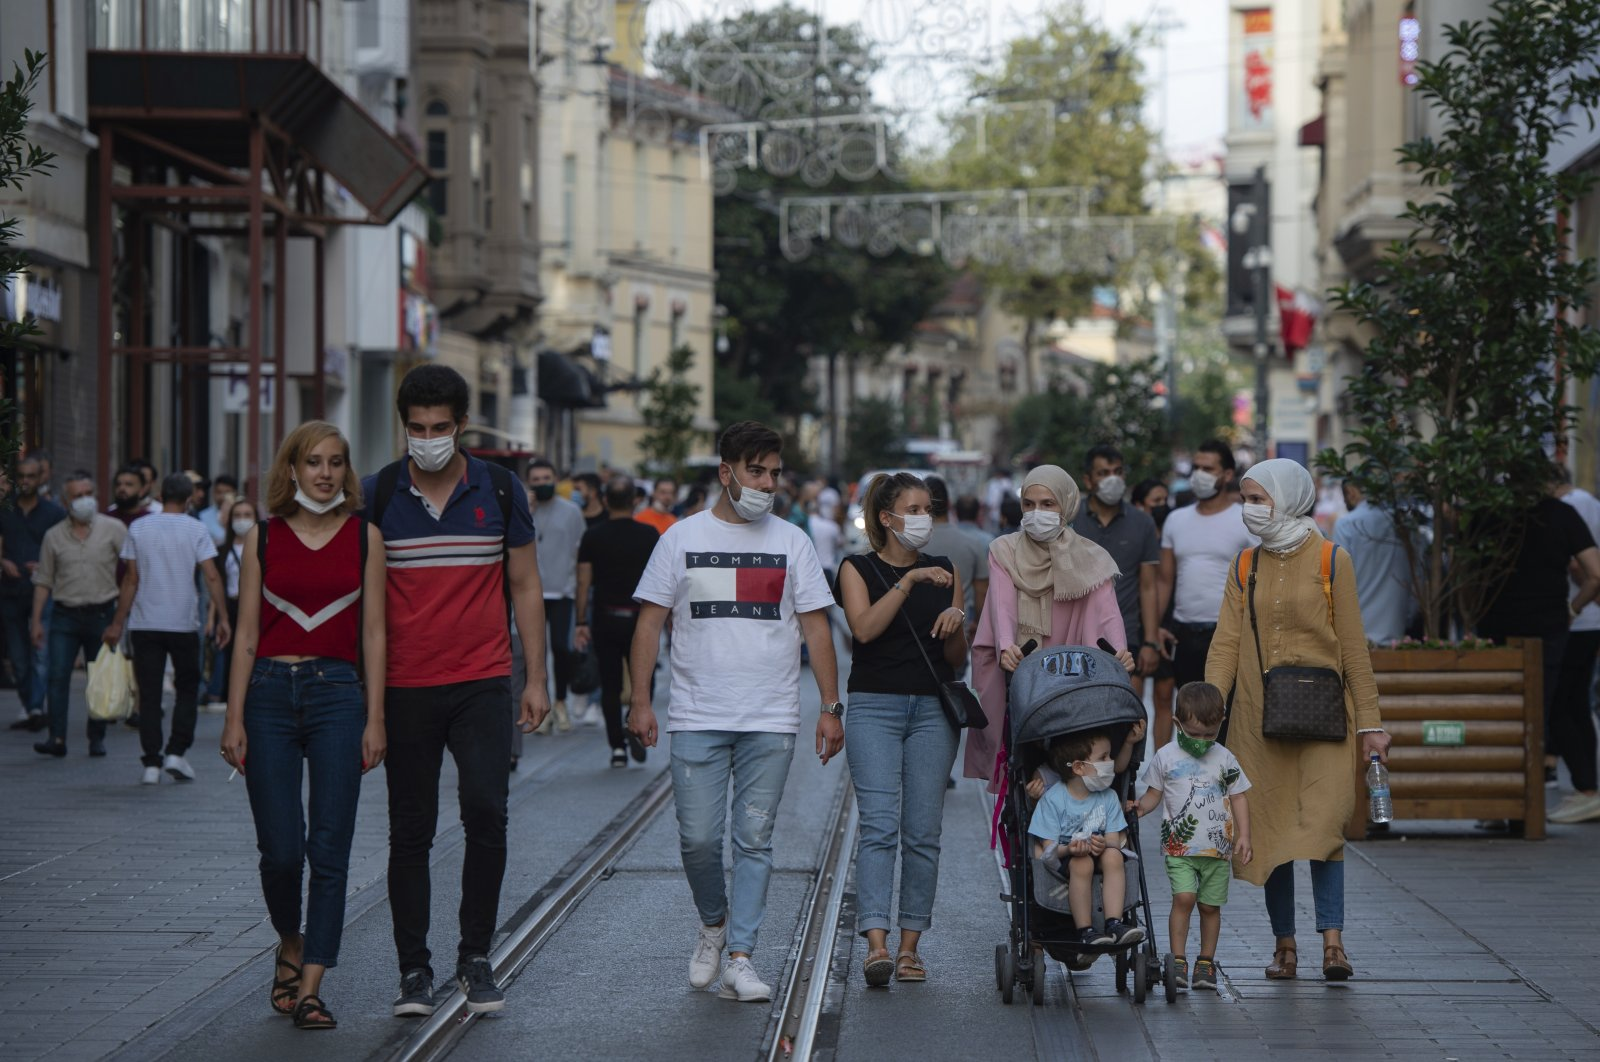 People wearing masks for protection against the spread of coronavirus, walk along Istiklal street, the main shopping street in Istanbul, Friday, Sept. 11, 2020. (AP Photo)